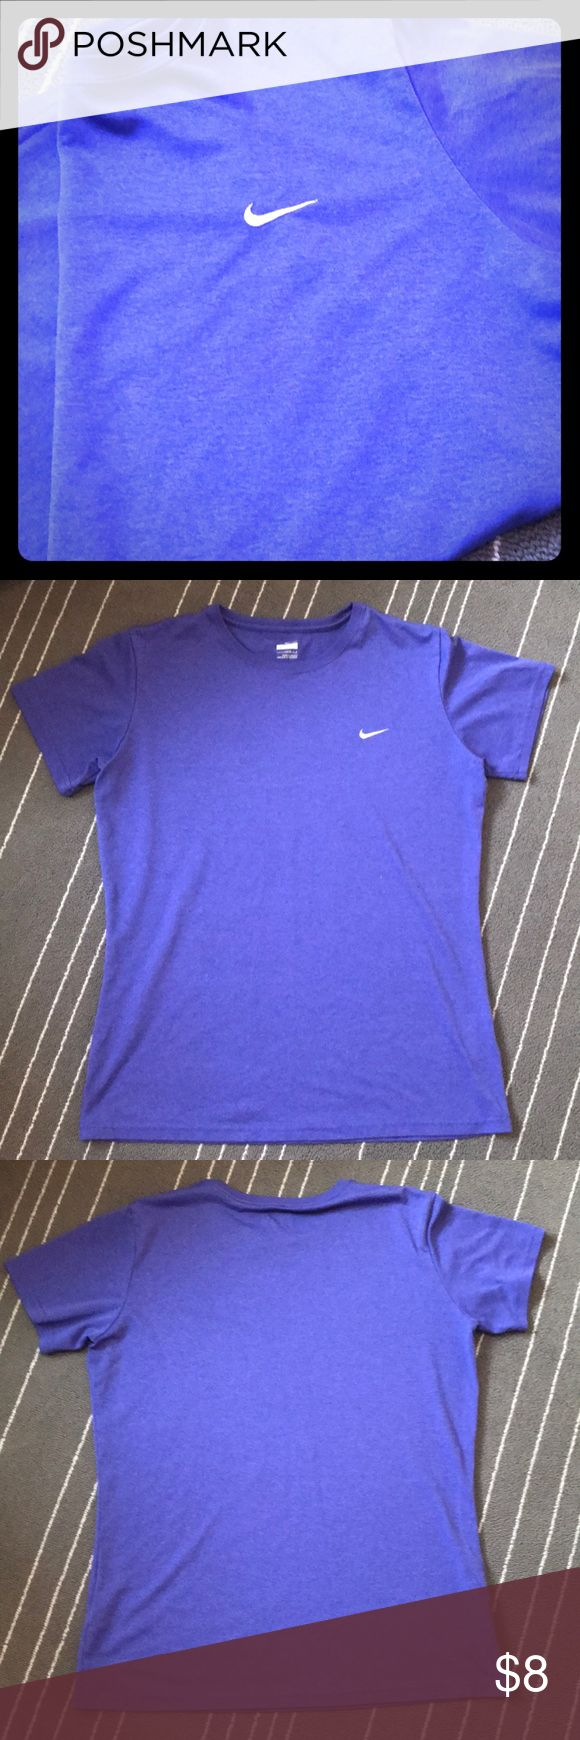 Nike Dry Fit Workout Top Women's size Large purple Dry Fit Nike Workout shirt. Good used condition! Nike Tops Tees - Short Sleeve